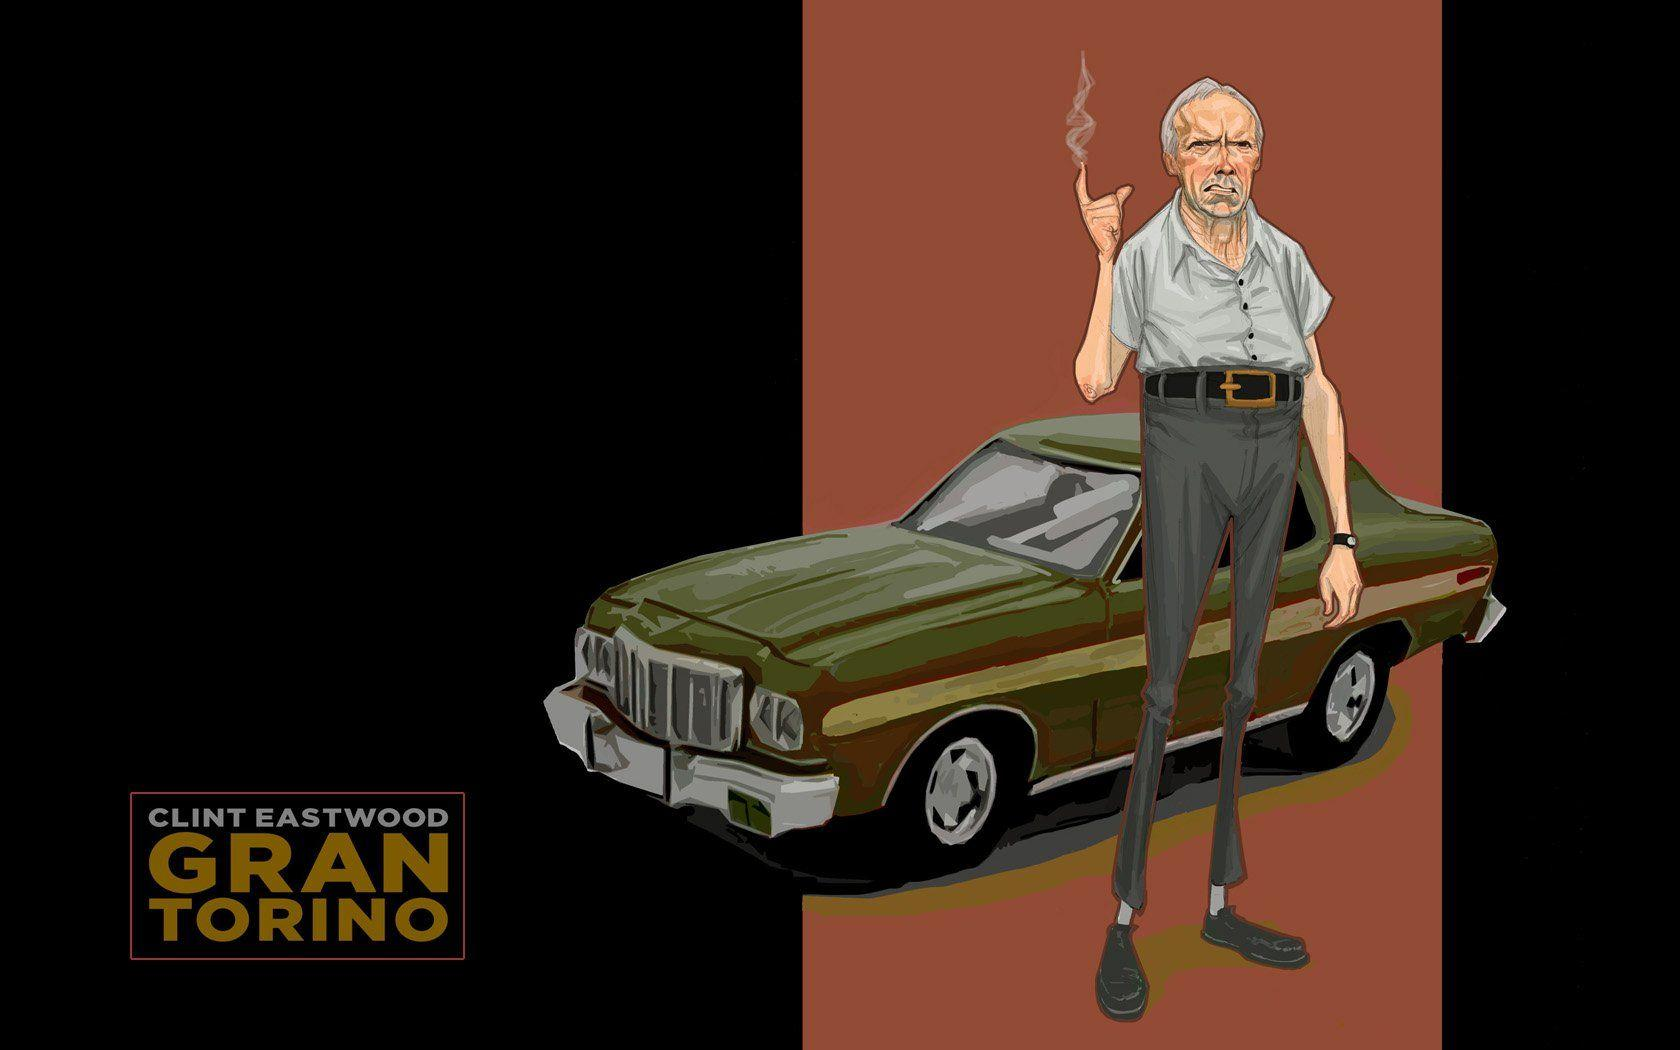 Gran Torino Wallpaper and Background | 1440x900 | ID:58251